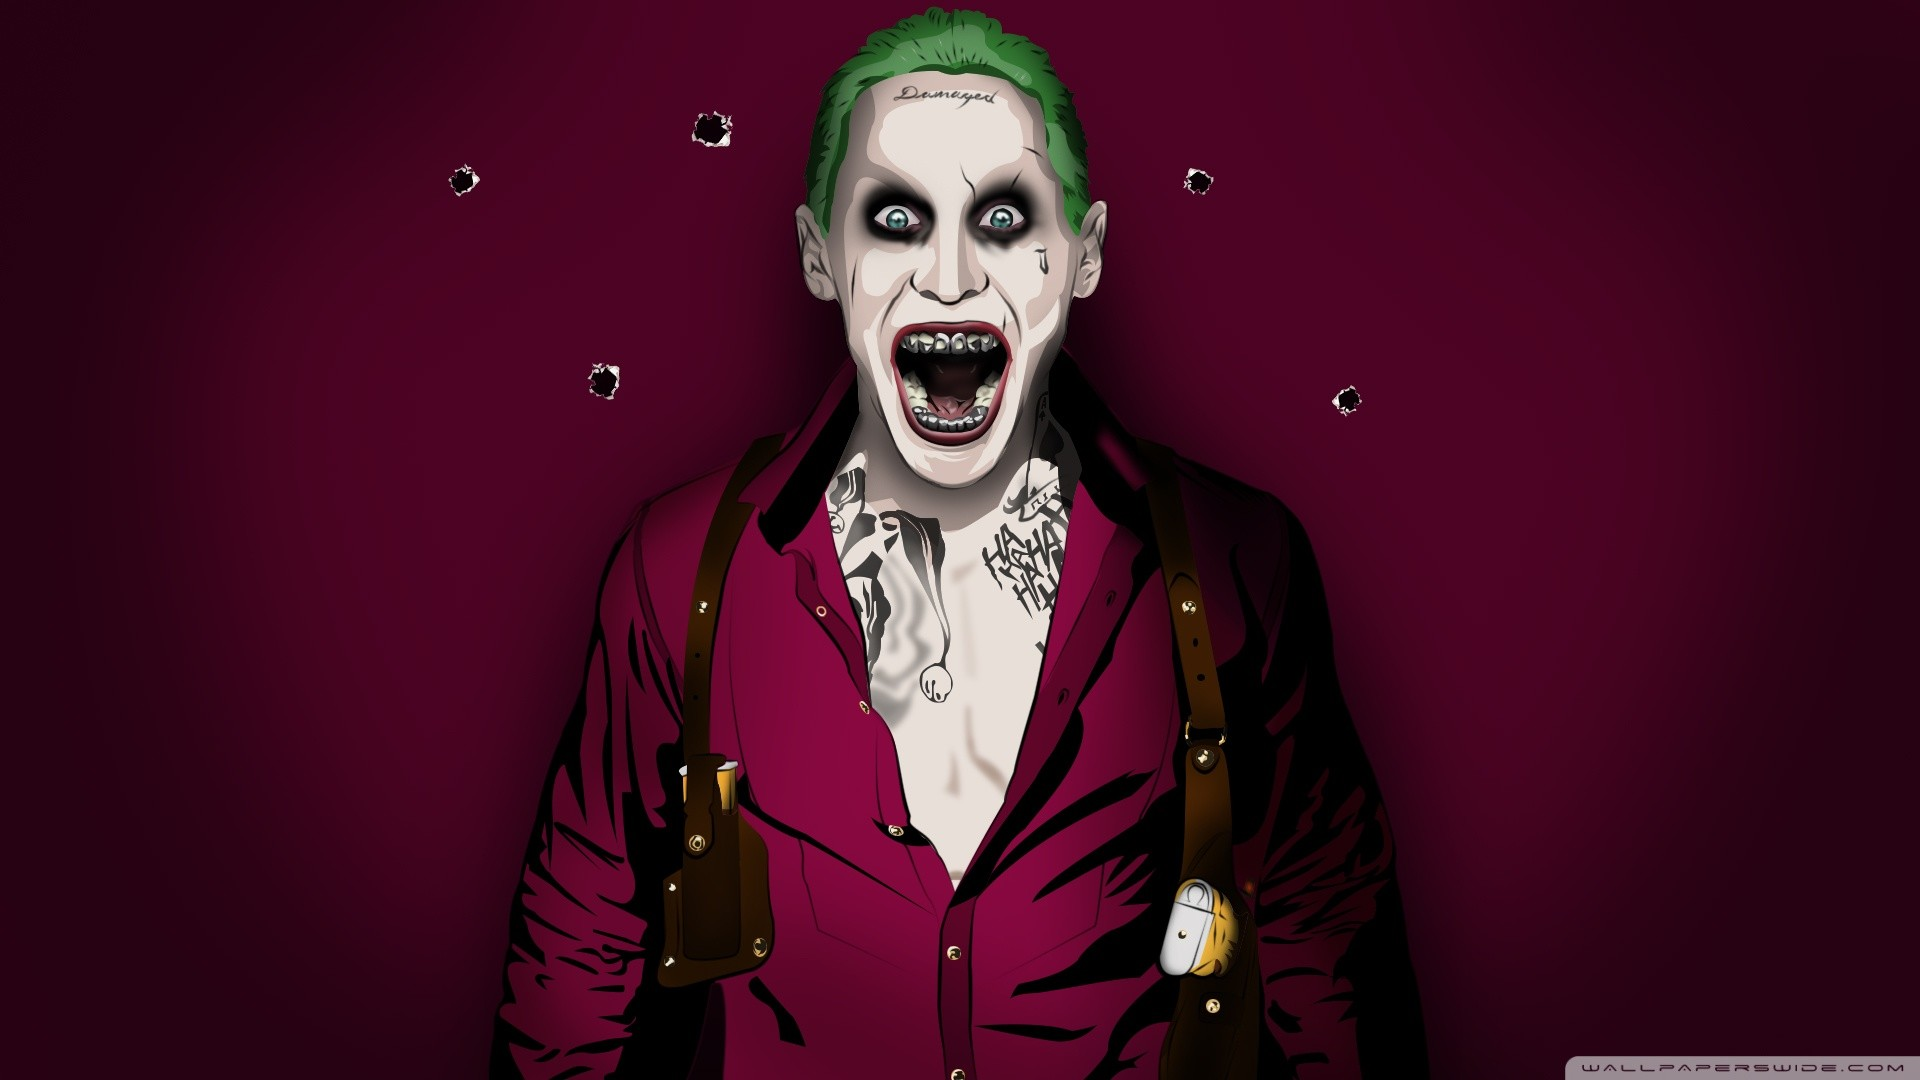 Jared Leto Joker Wallpapers Wallpapertag